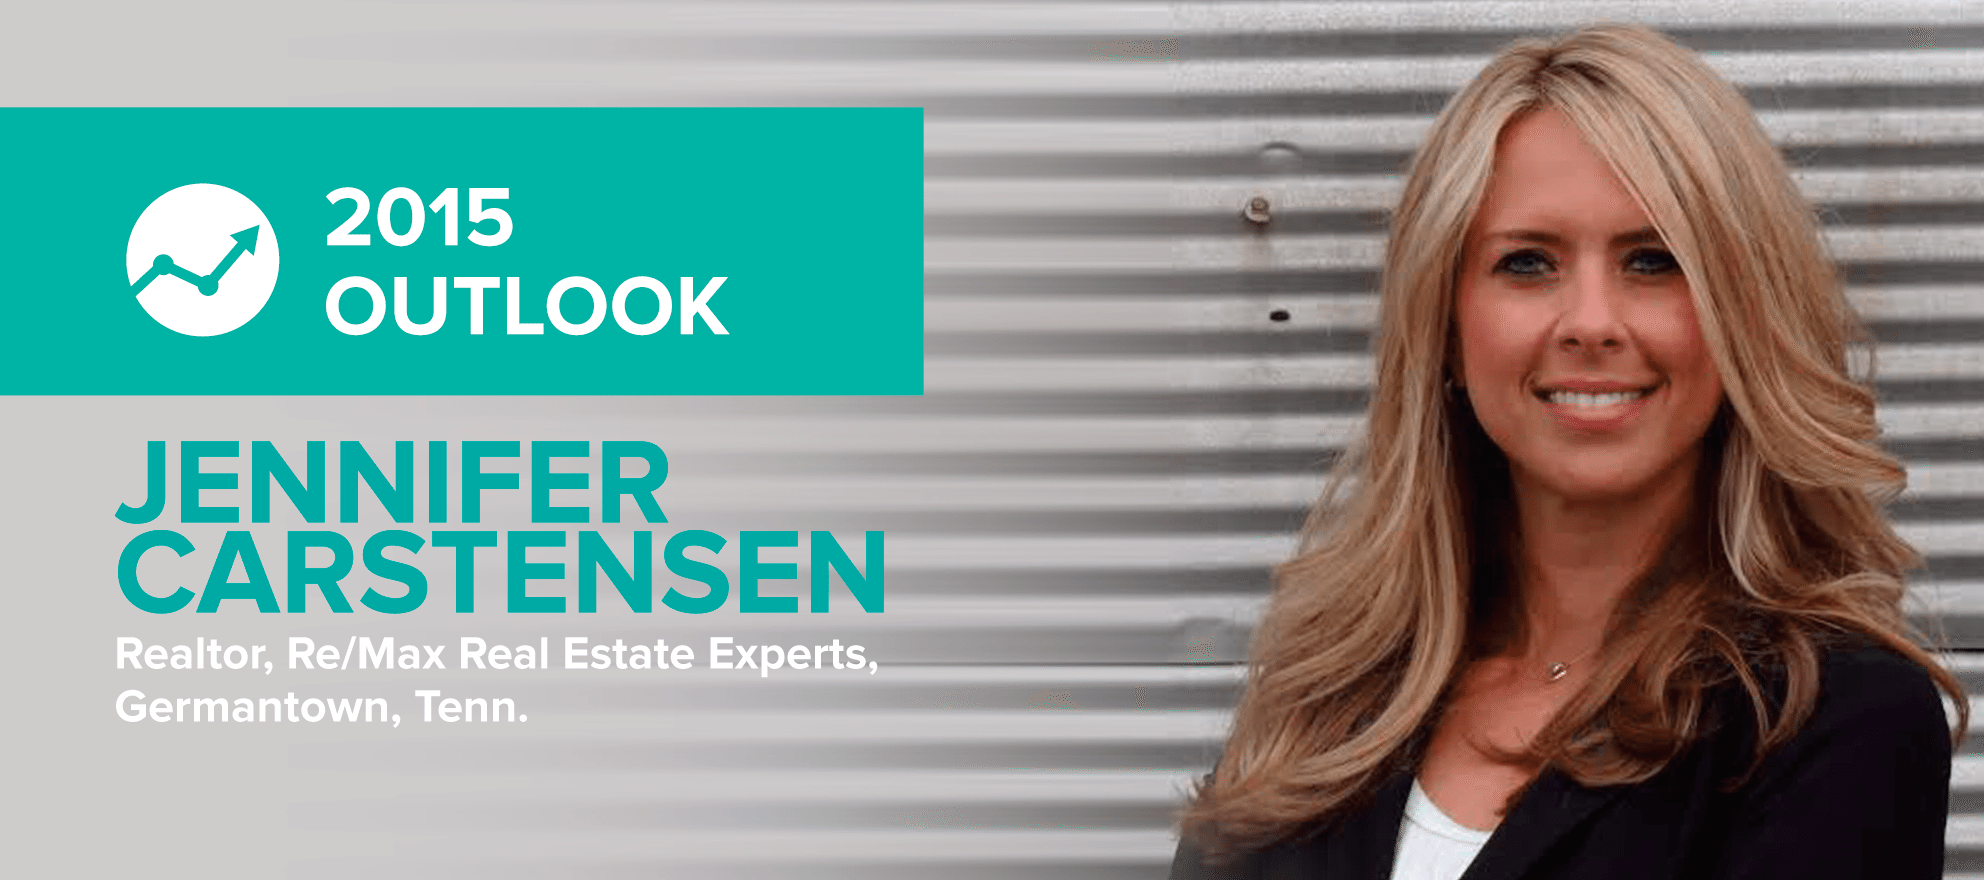 Jennifer Carstensen: 'The seller's market train has left the station'